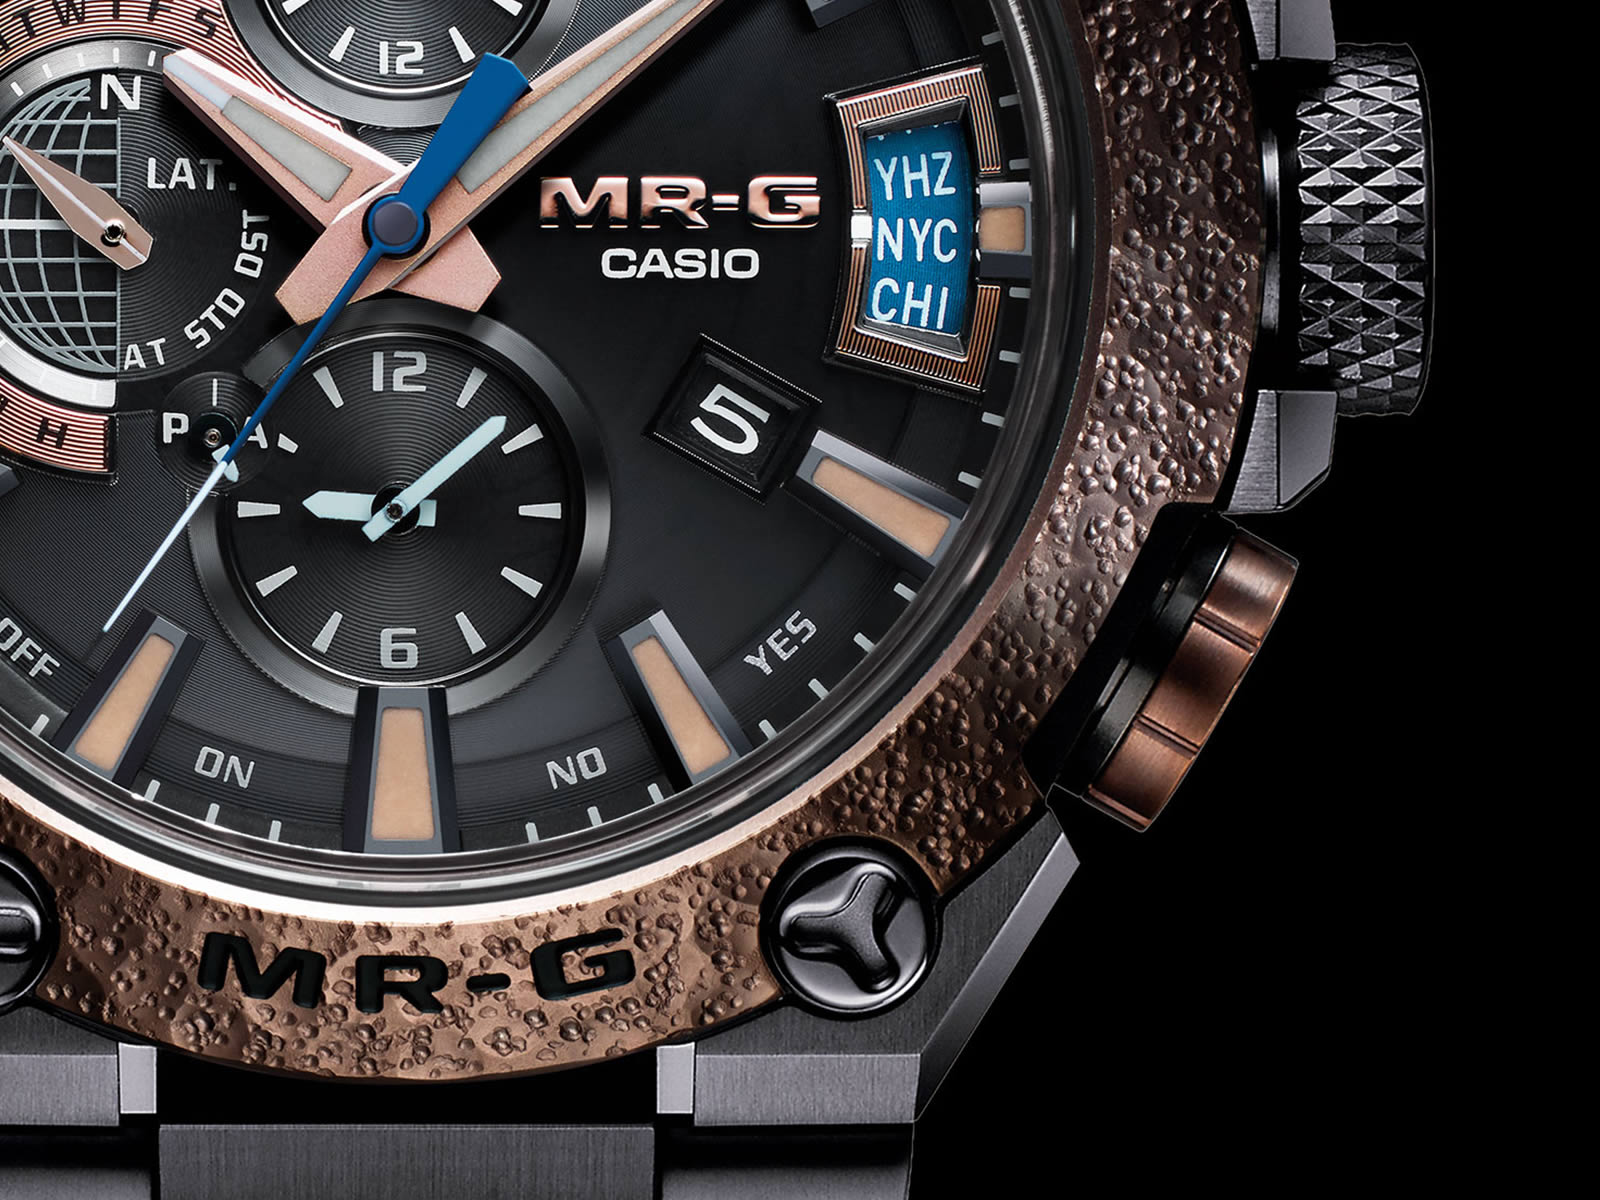 mrg-g2000ha-casio-g-shock-mr-g-hammer-tone-7-.jpg